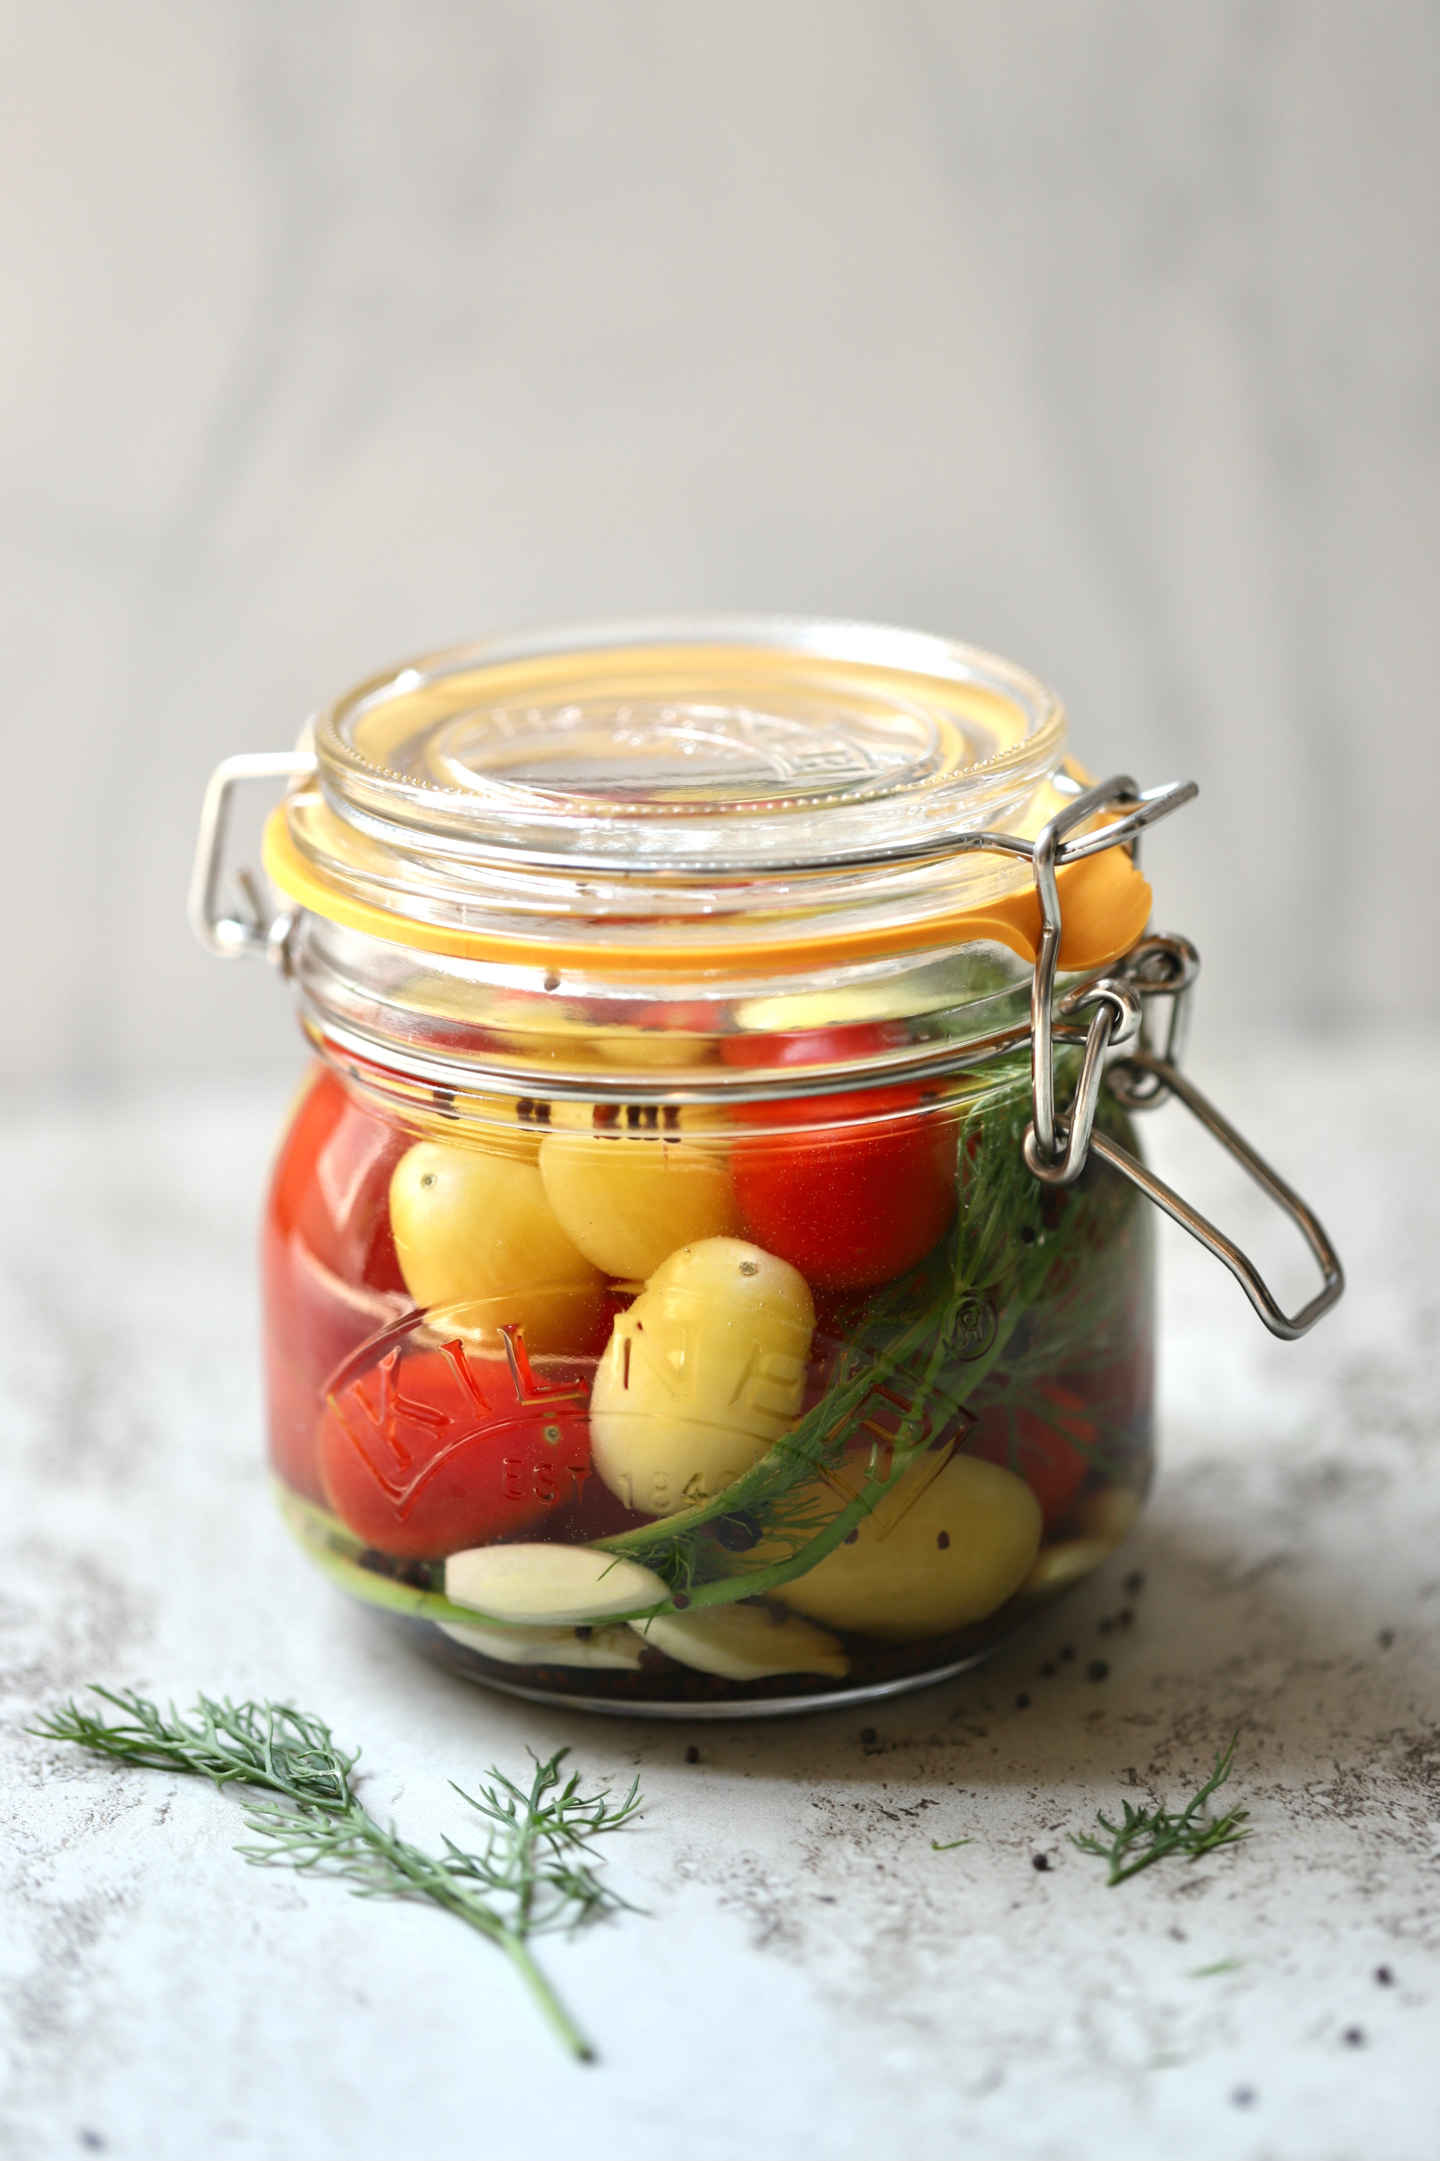 red and yellow cherry tomatoes fermenting in a jar